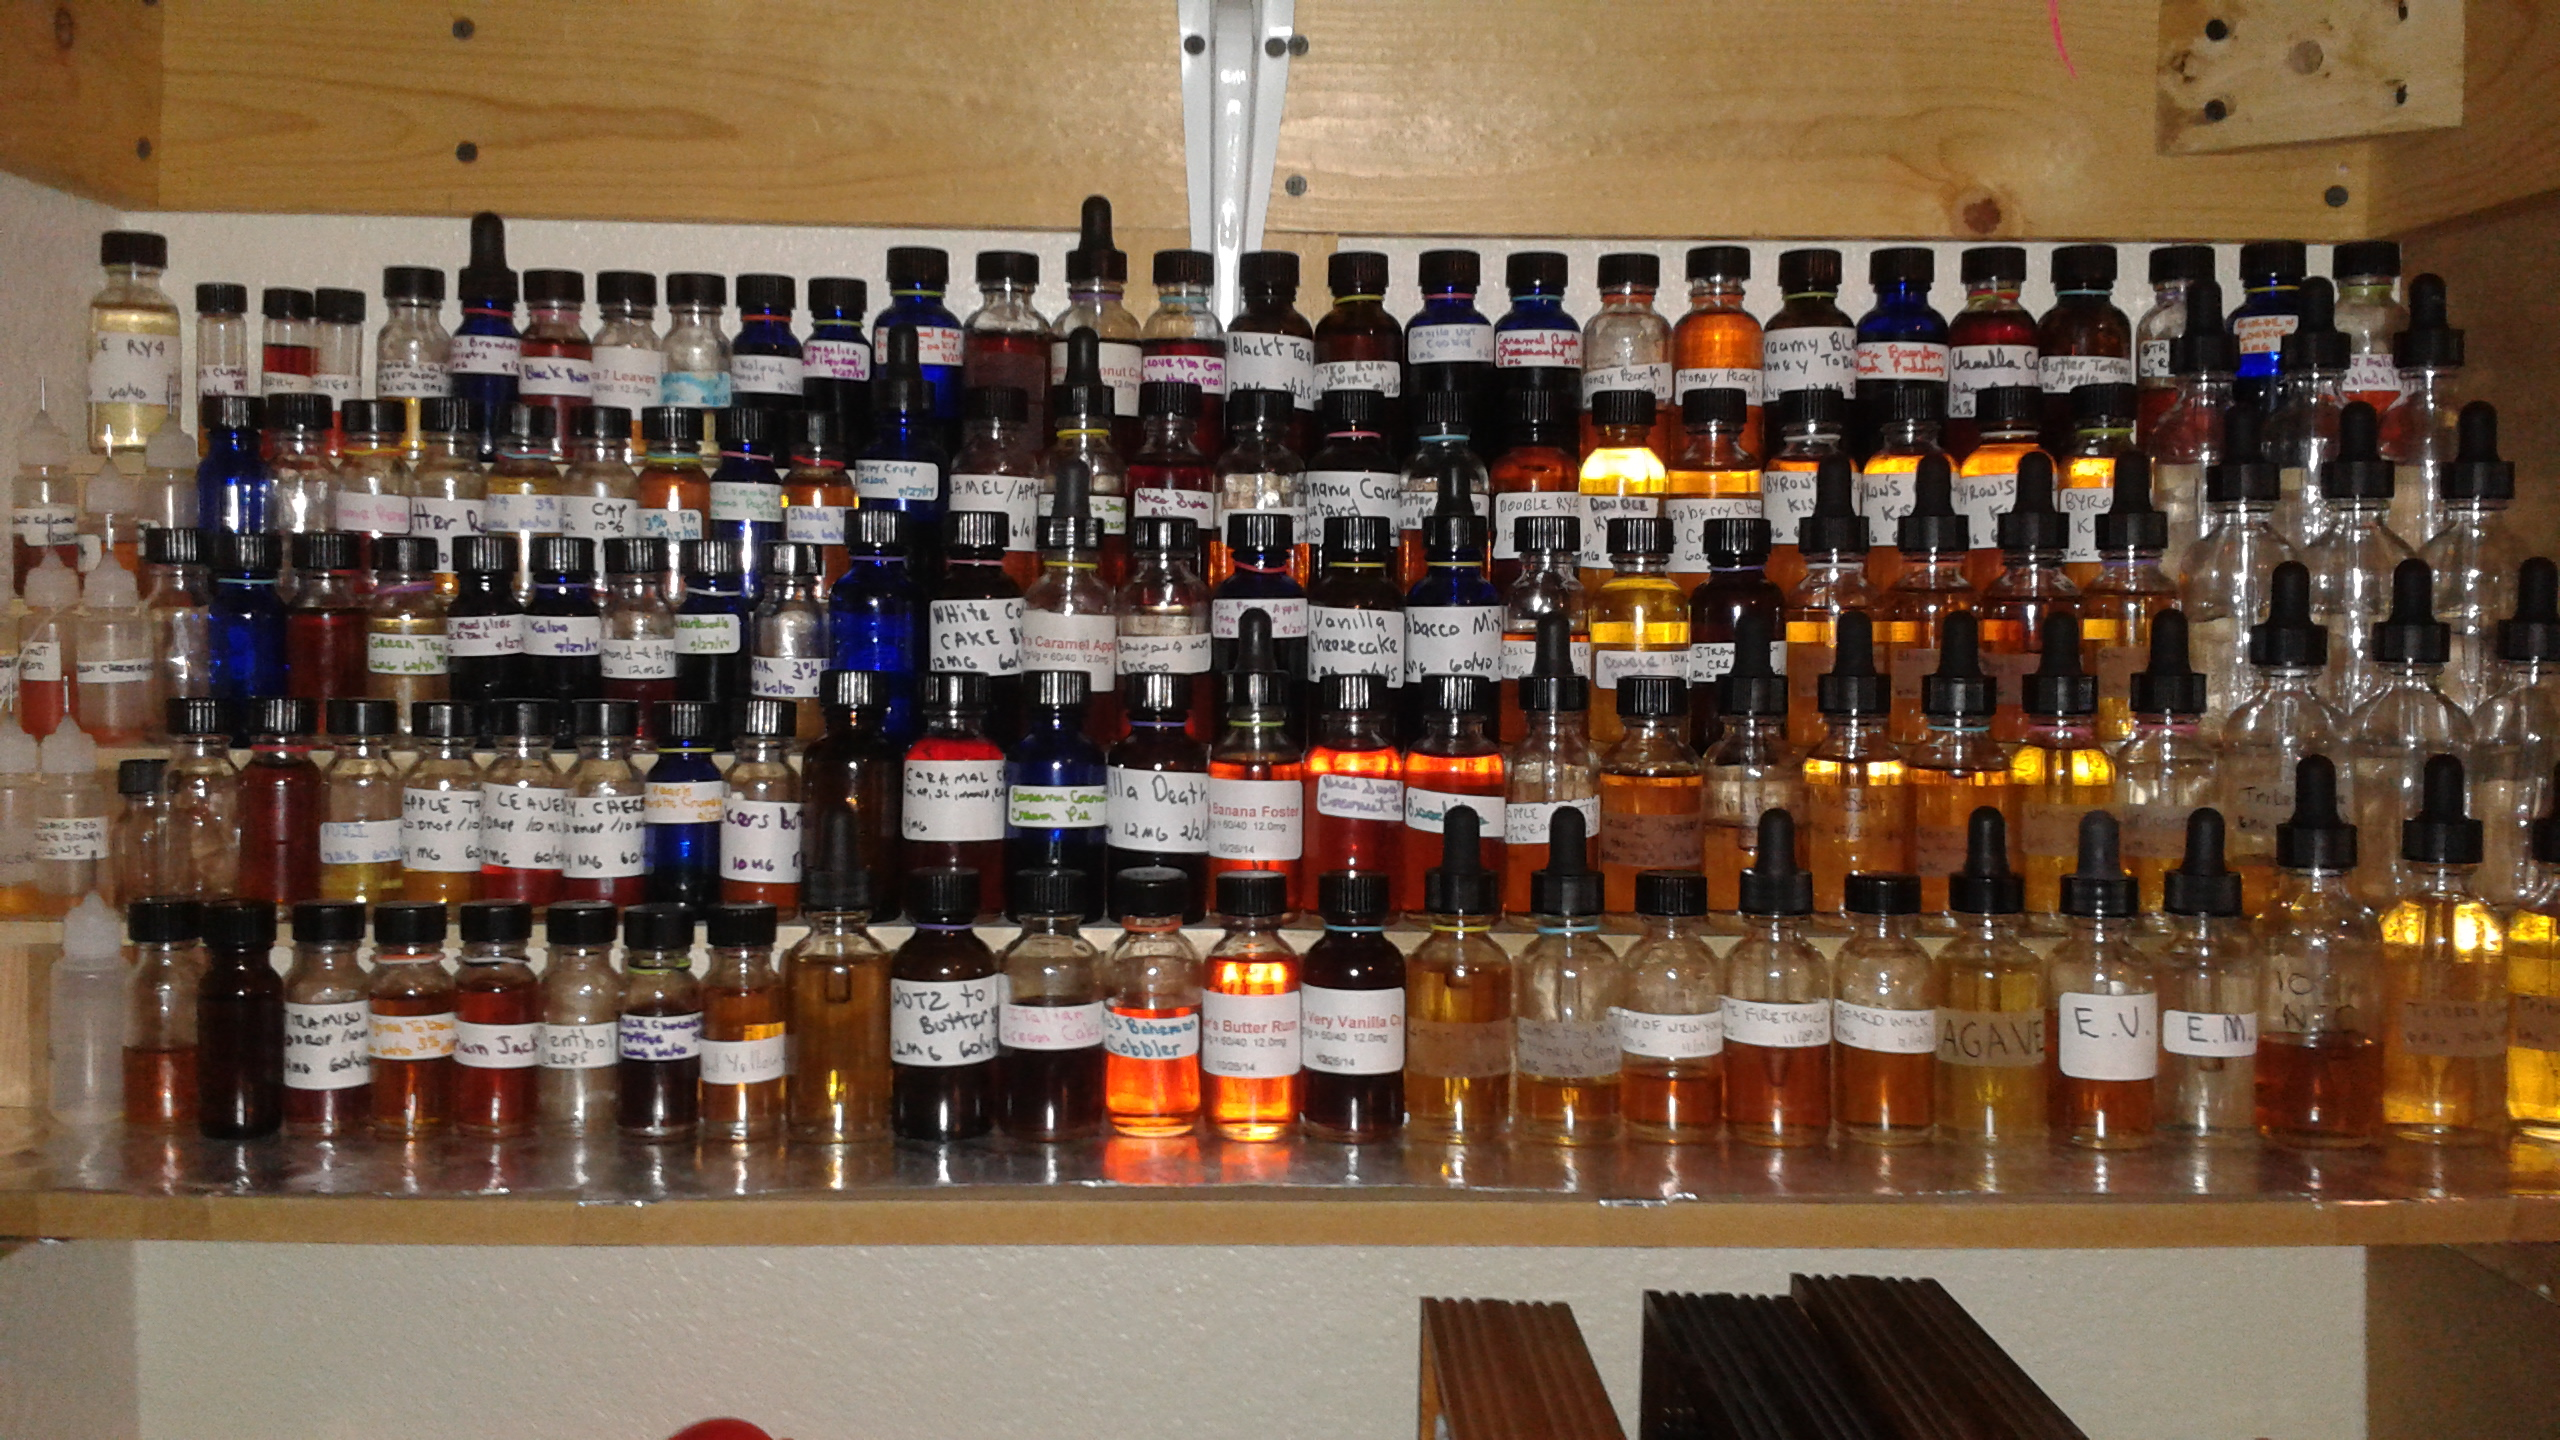 How To Make Quick And Easy Display Shelves - The Pub - E